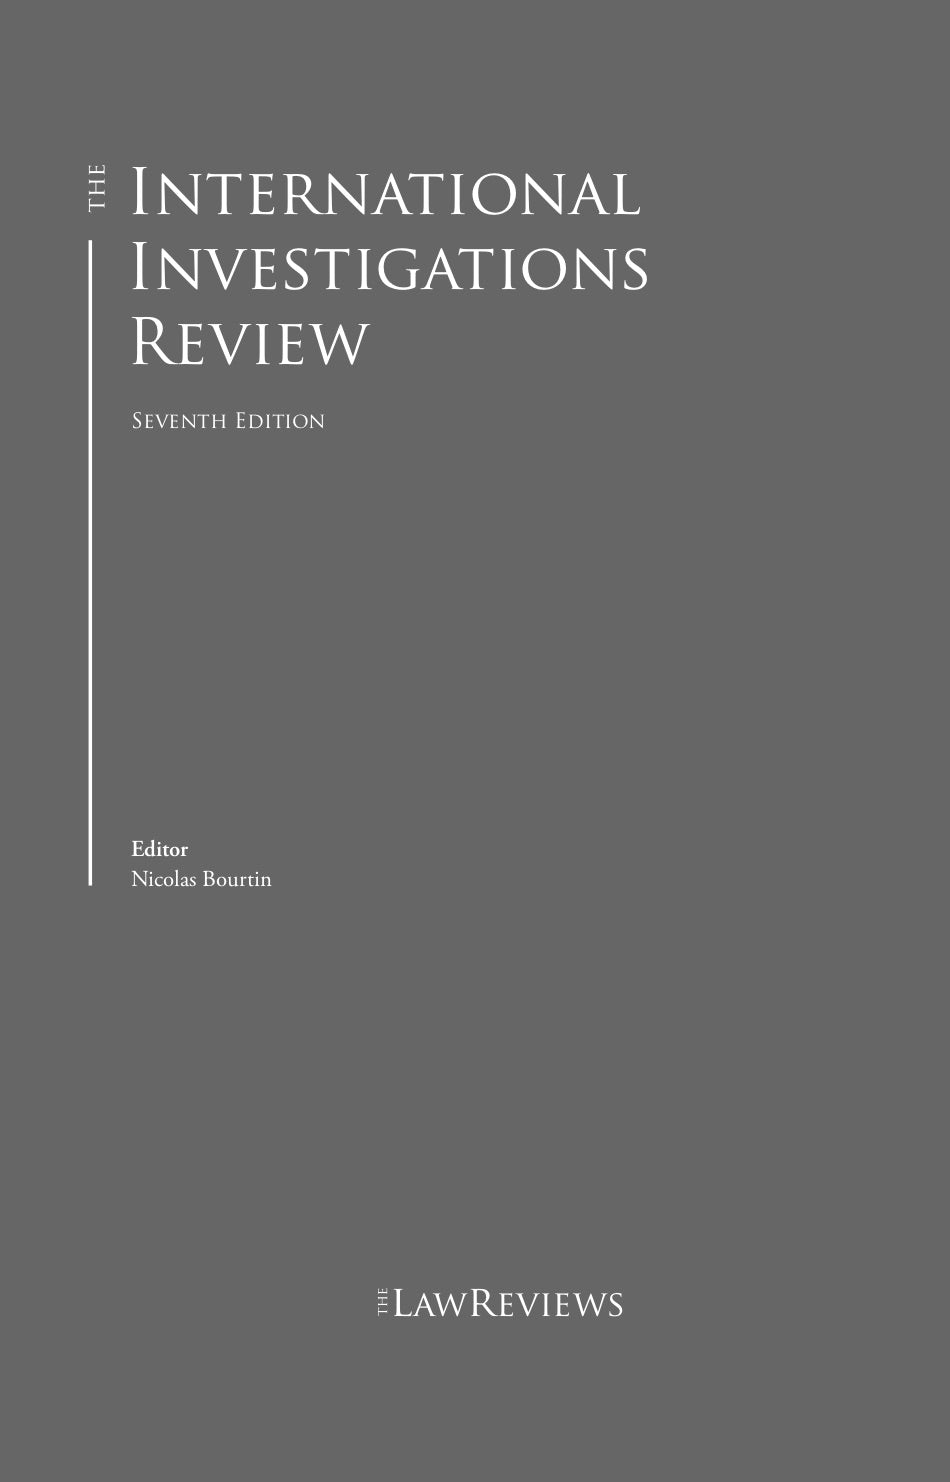 The international investigations review 7th edition the law reviews shop